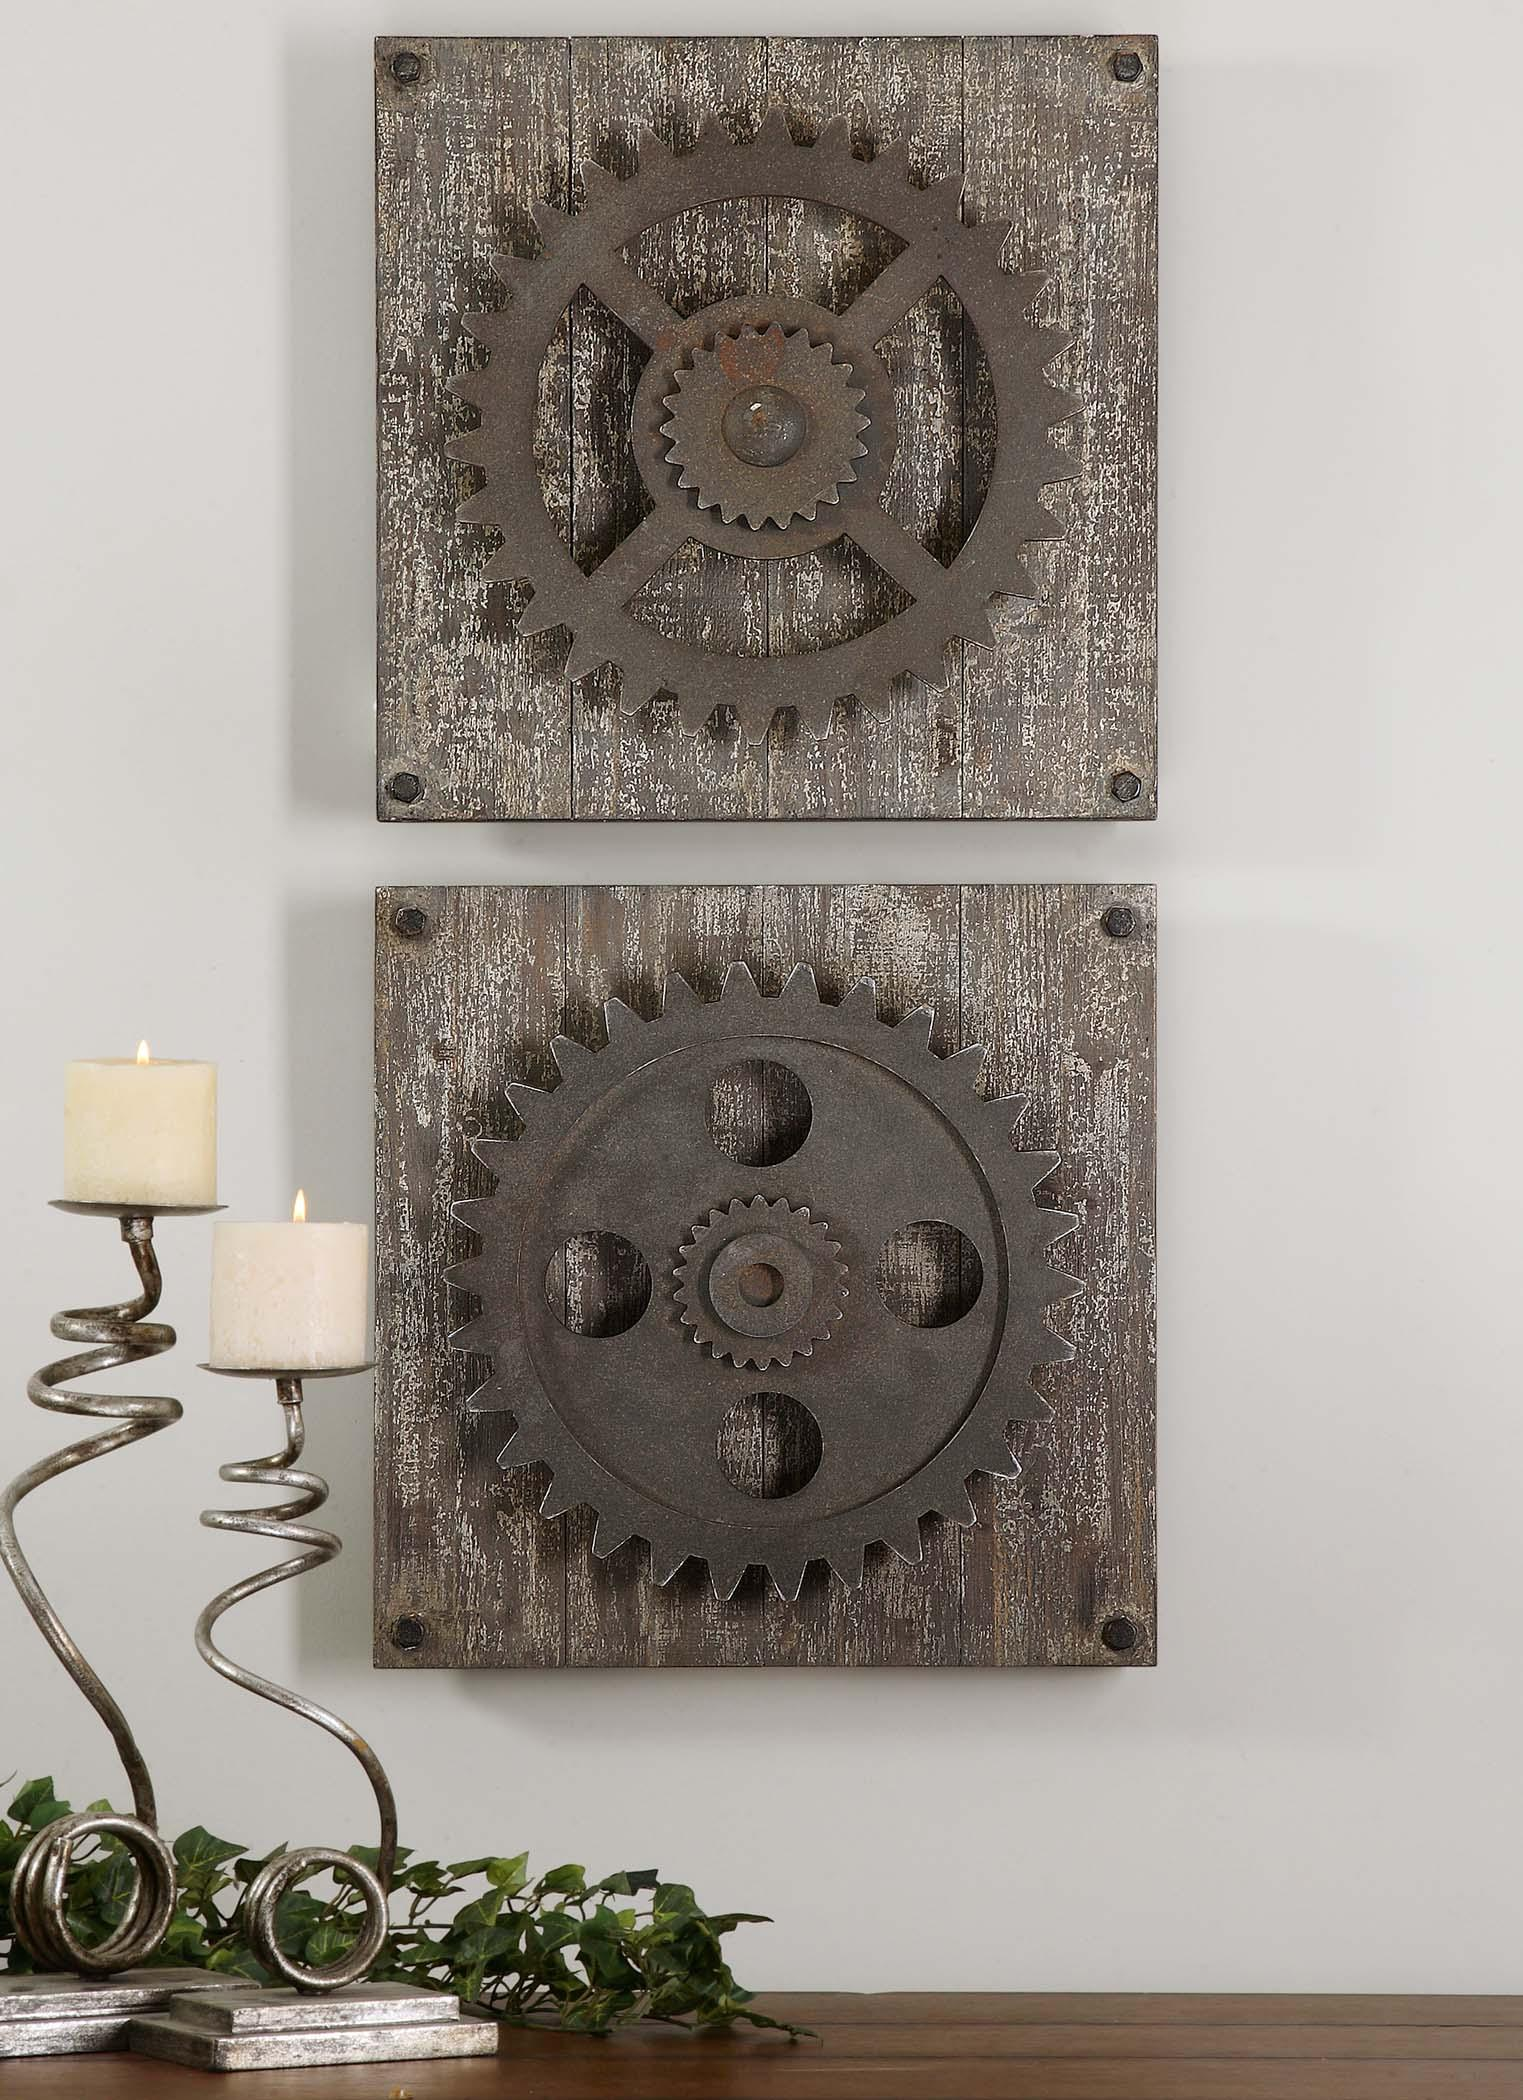 Best Uttermost Alternative Wall Decor 13828 Rustic Gears Del This Month